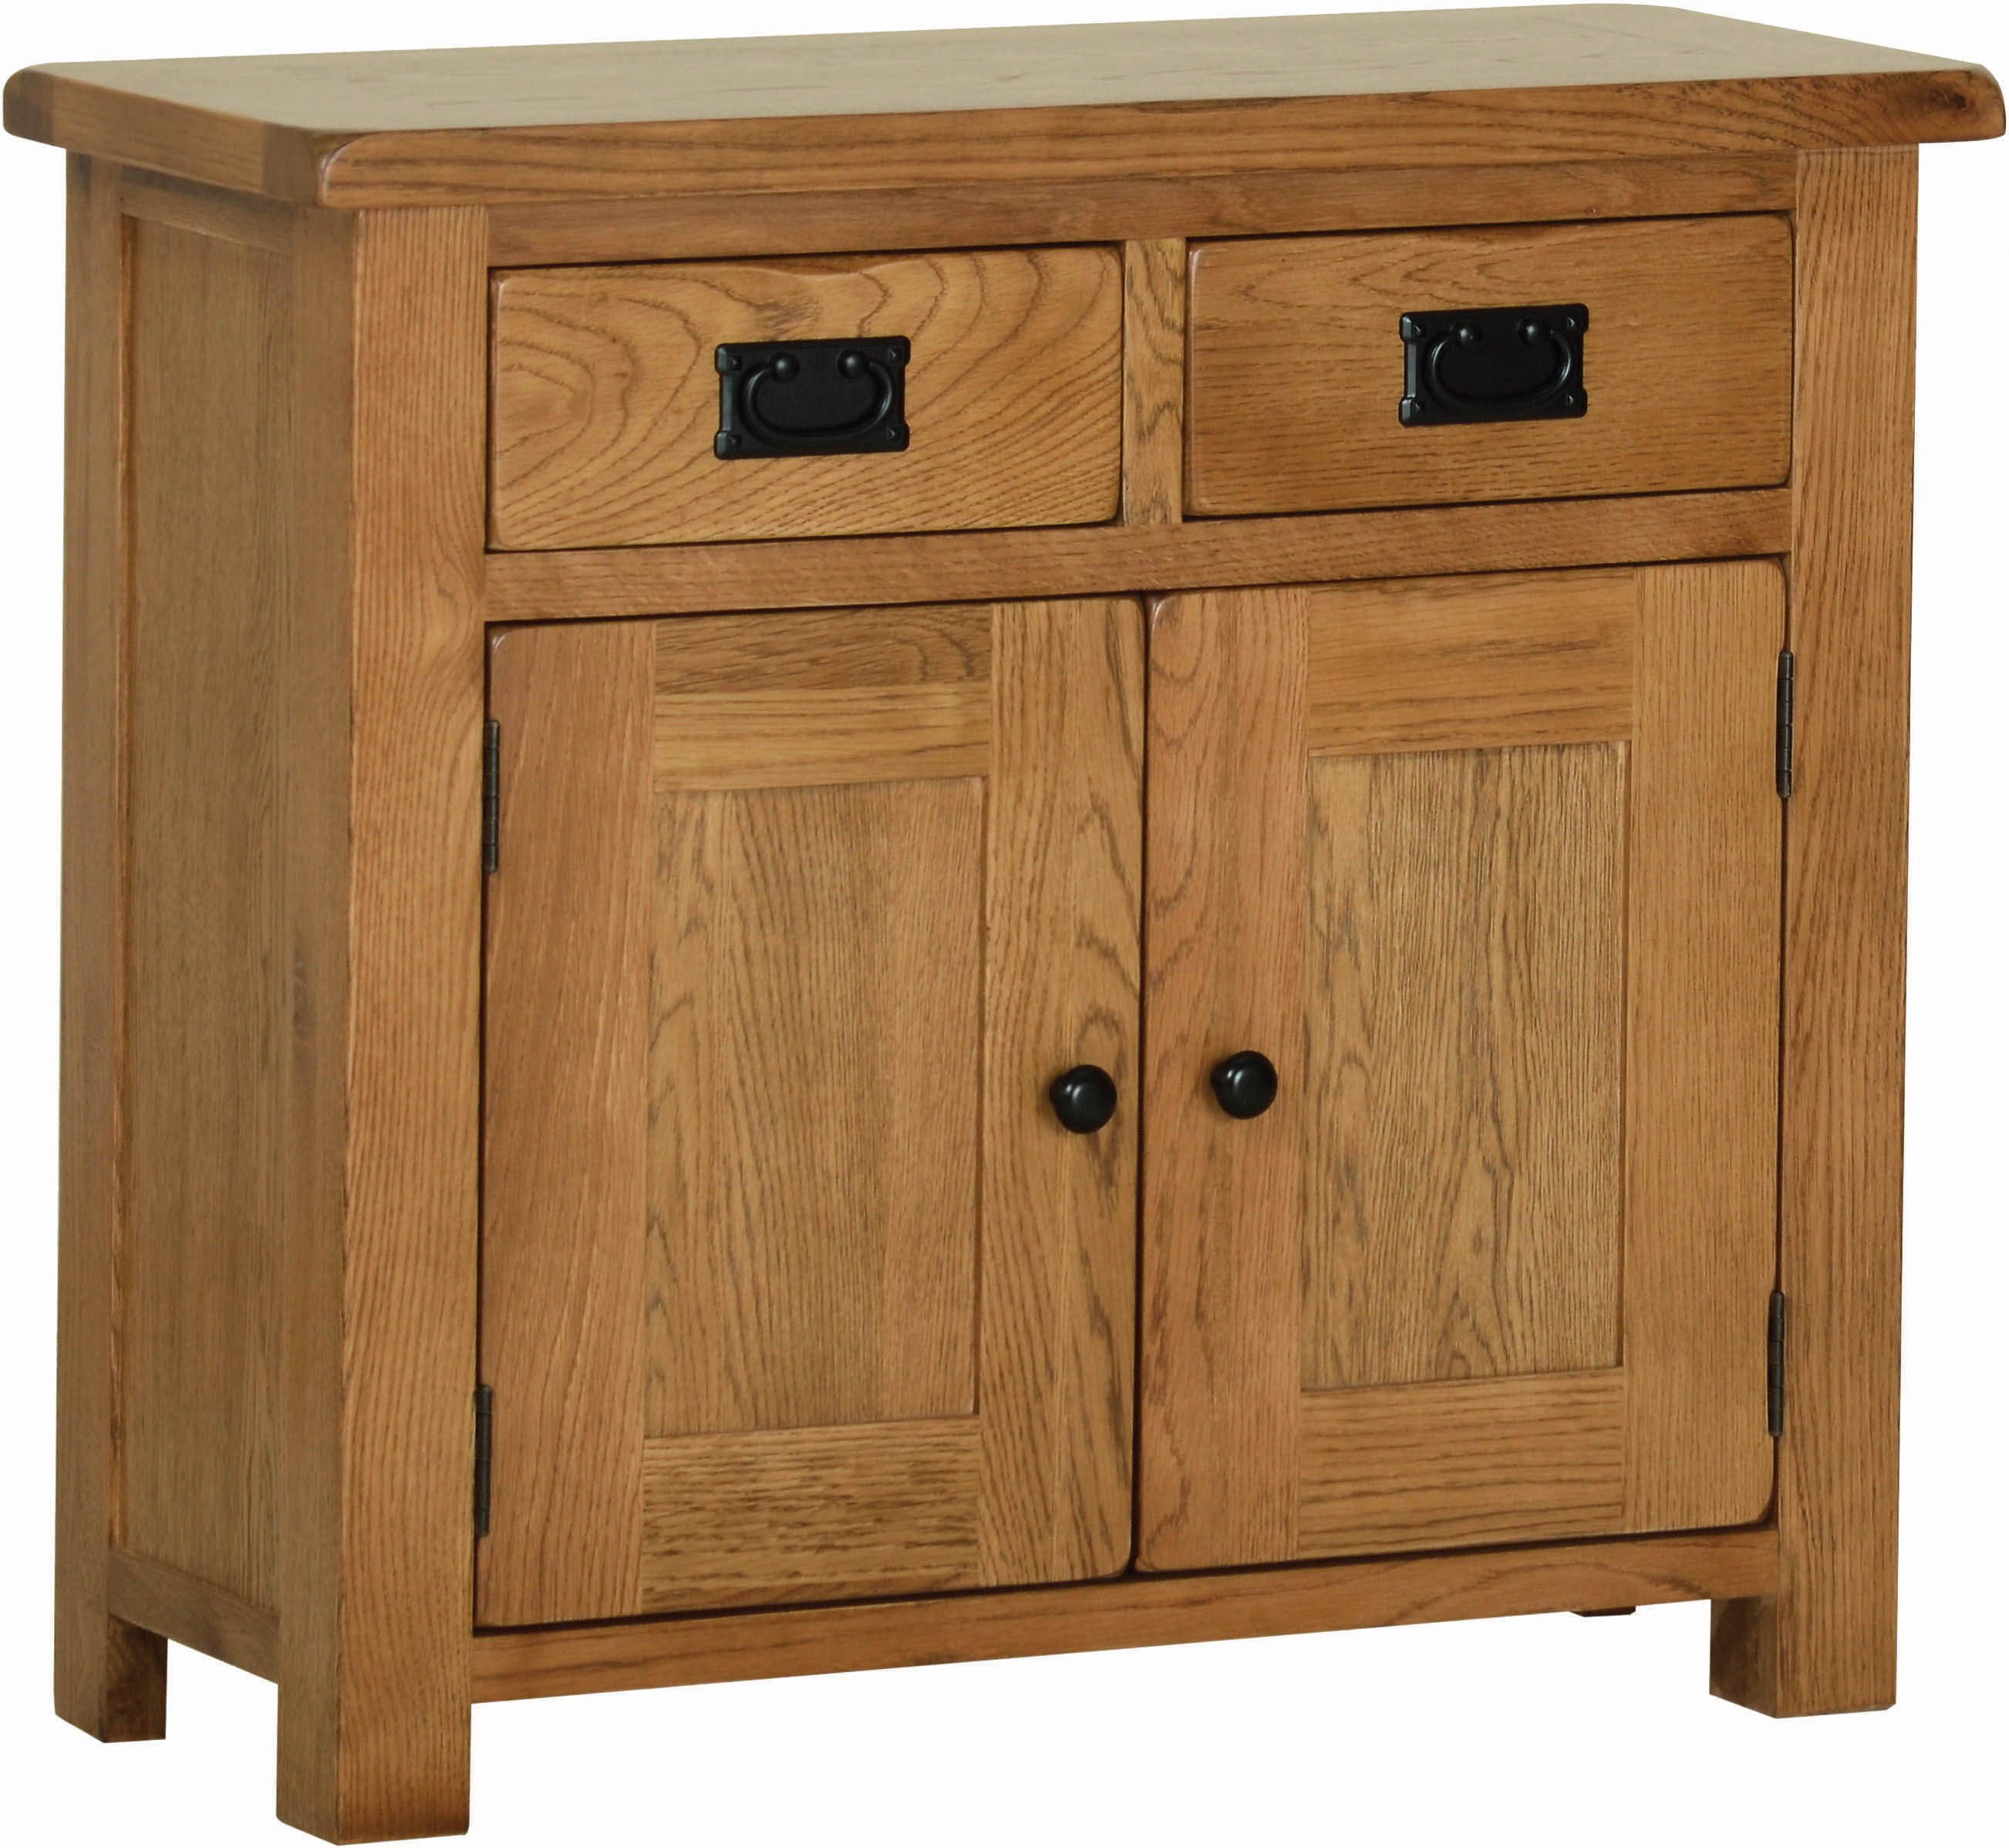 Sudbury Oak Small Sideboard. rustic shaker style with rounded edges. 2 handy drawers with rustic black handles, two doors with rustic black round knobs. adjustable shelf in each cupboard. SRS15